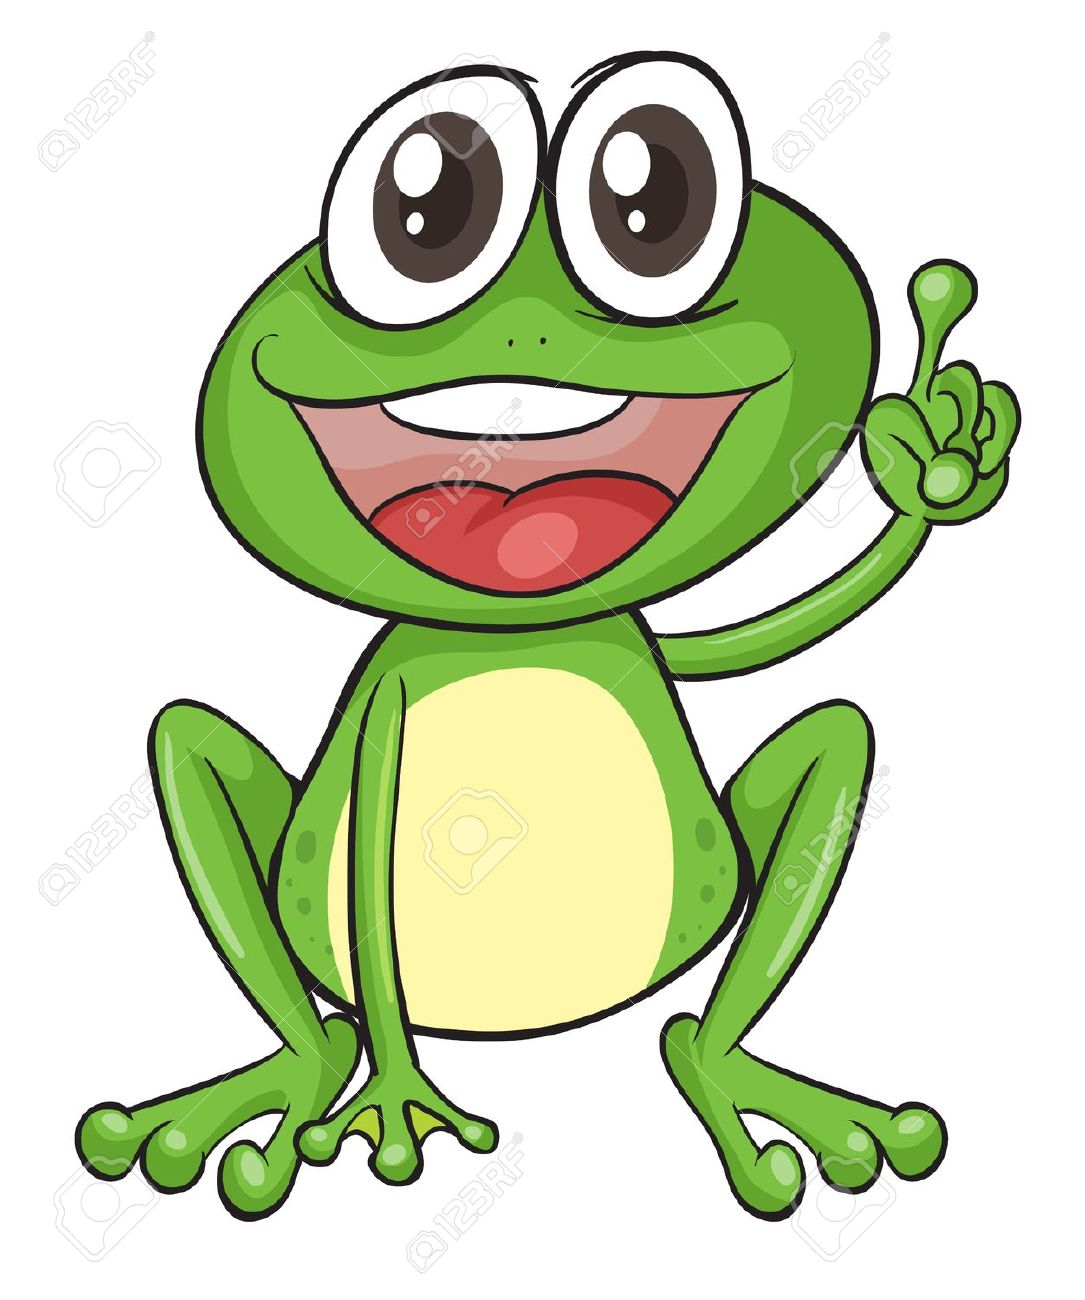 1085x1300 Free Frog Clipart